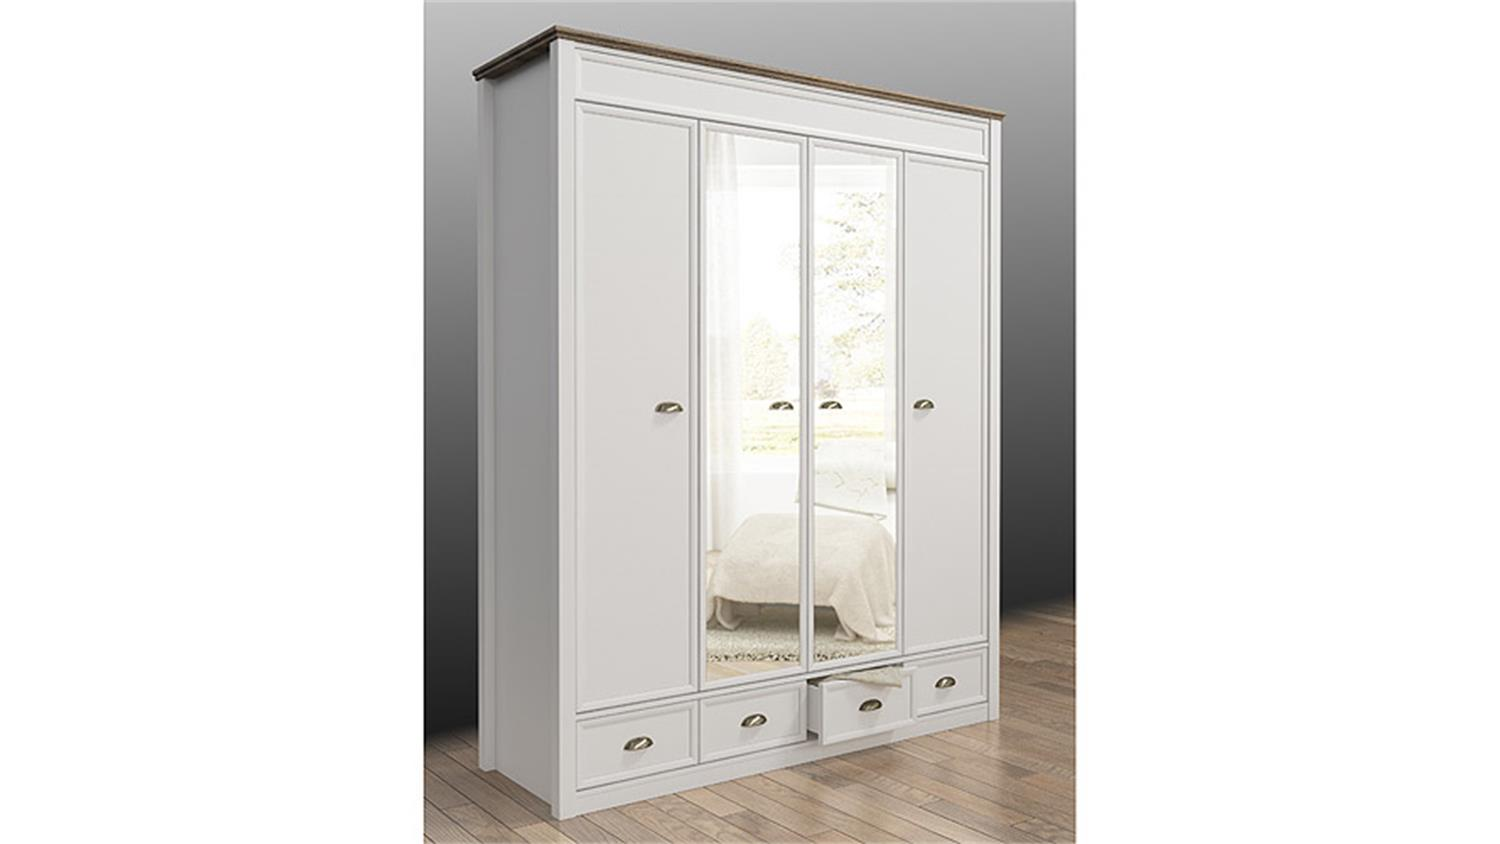 kleiderschrank chateau in wei und san remo eiche 180 cm. Black Bedroom Furniture Sets. Home Design Ideas